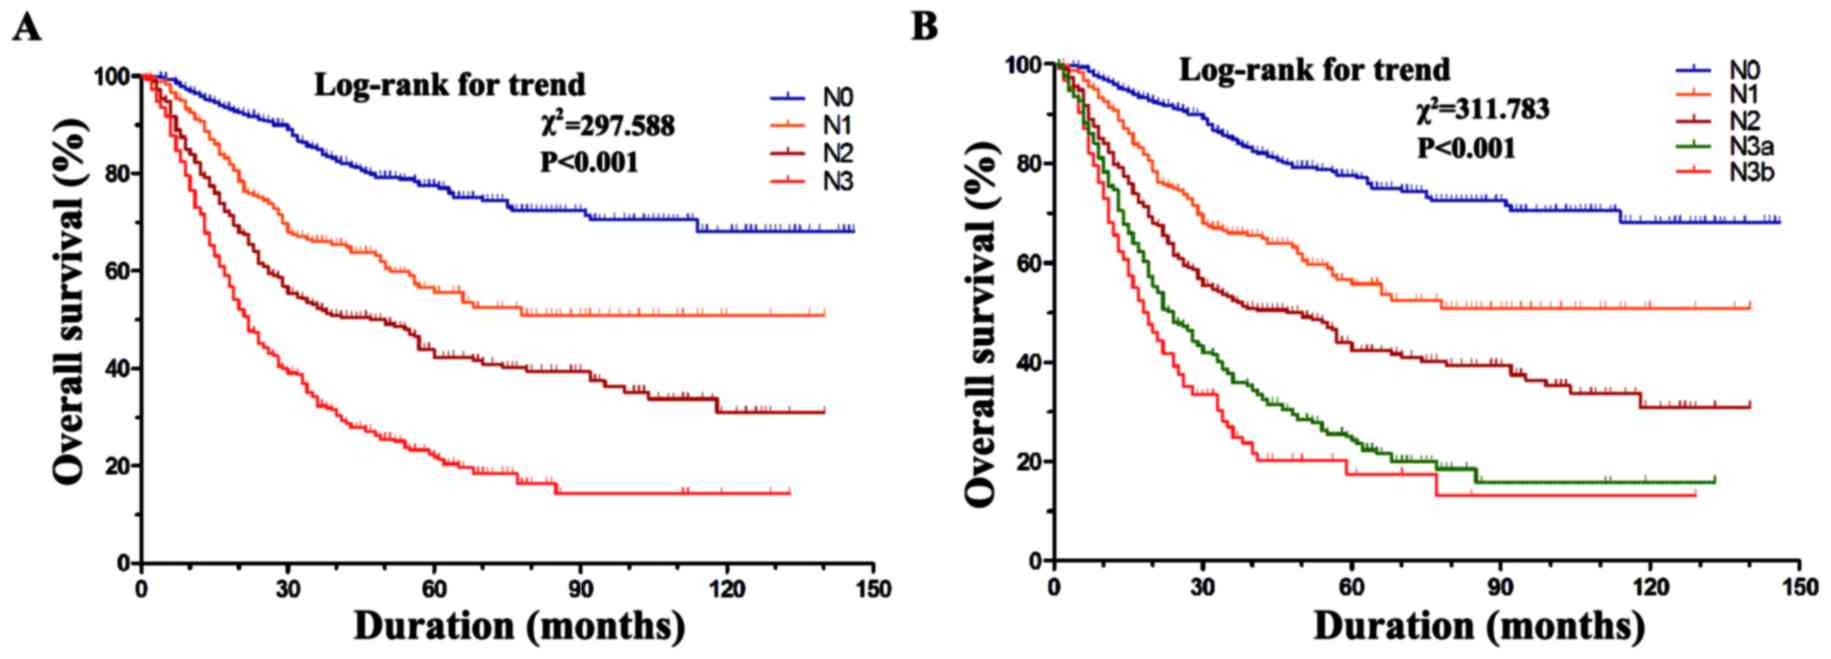 Superiority Of The 8th Edition Of The Tnm Staging System For Predicting Overall Survival In Gastric Cancer Comparative Analysis Of The 7th And 8th Editions In A Monoinstitutional Cohort